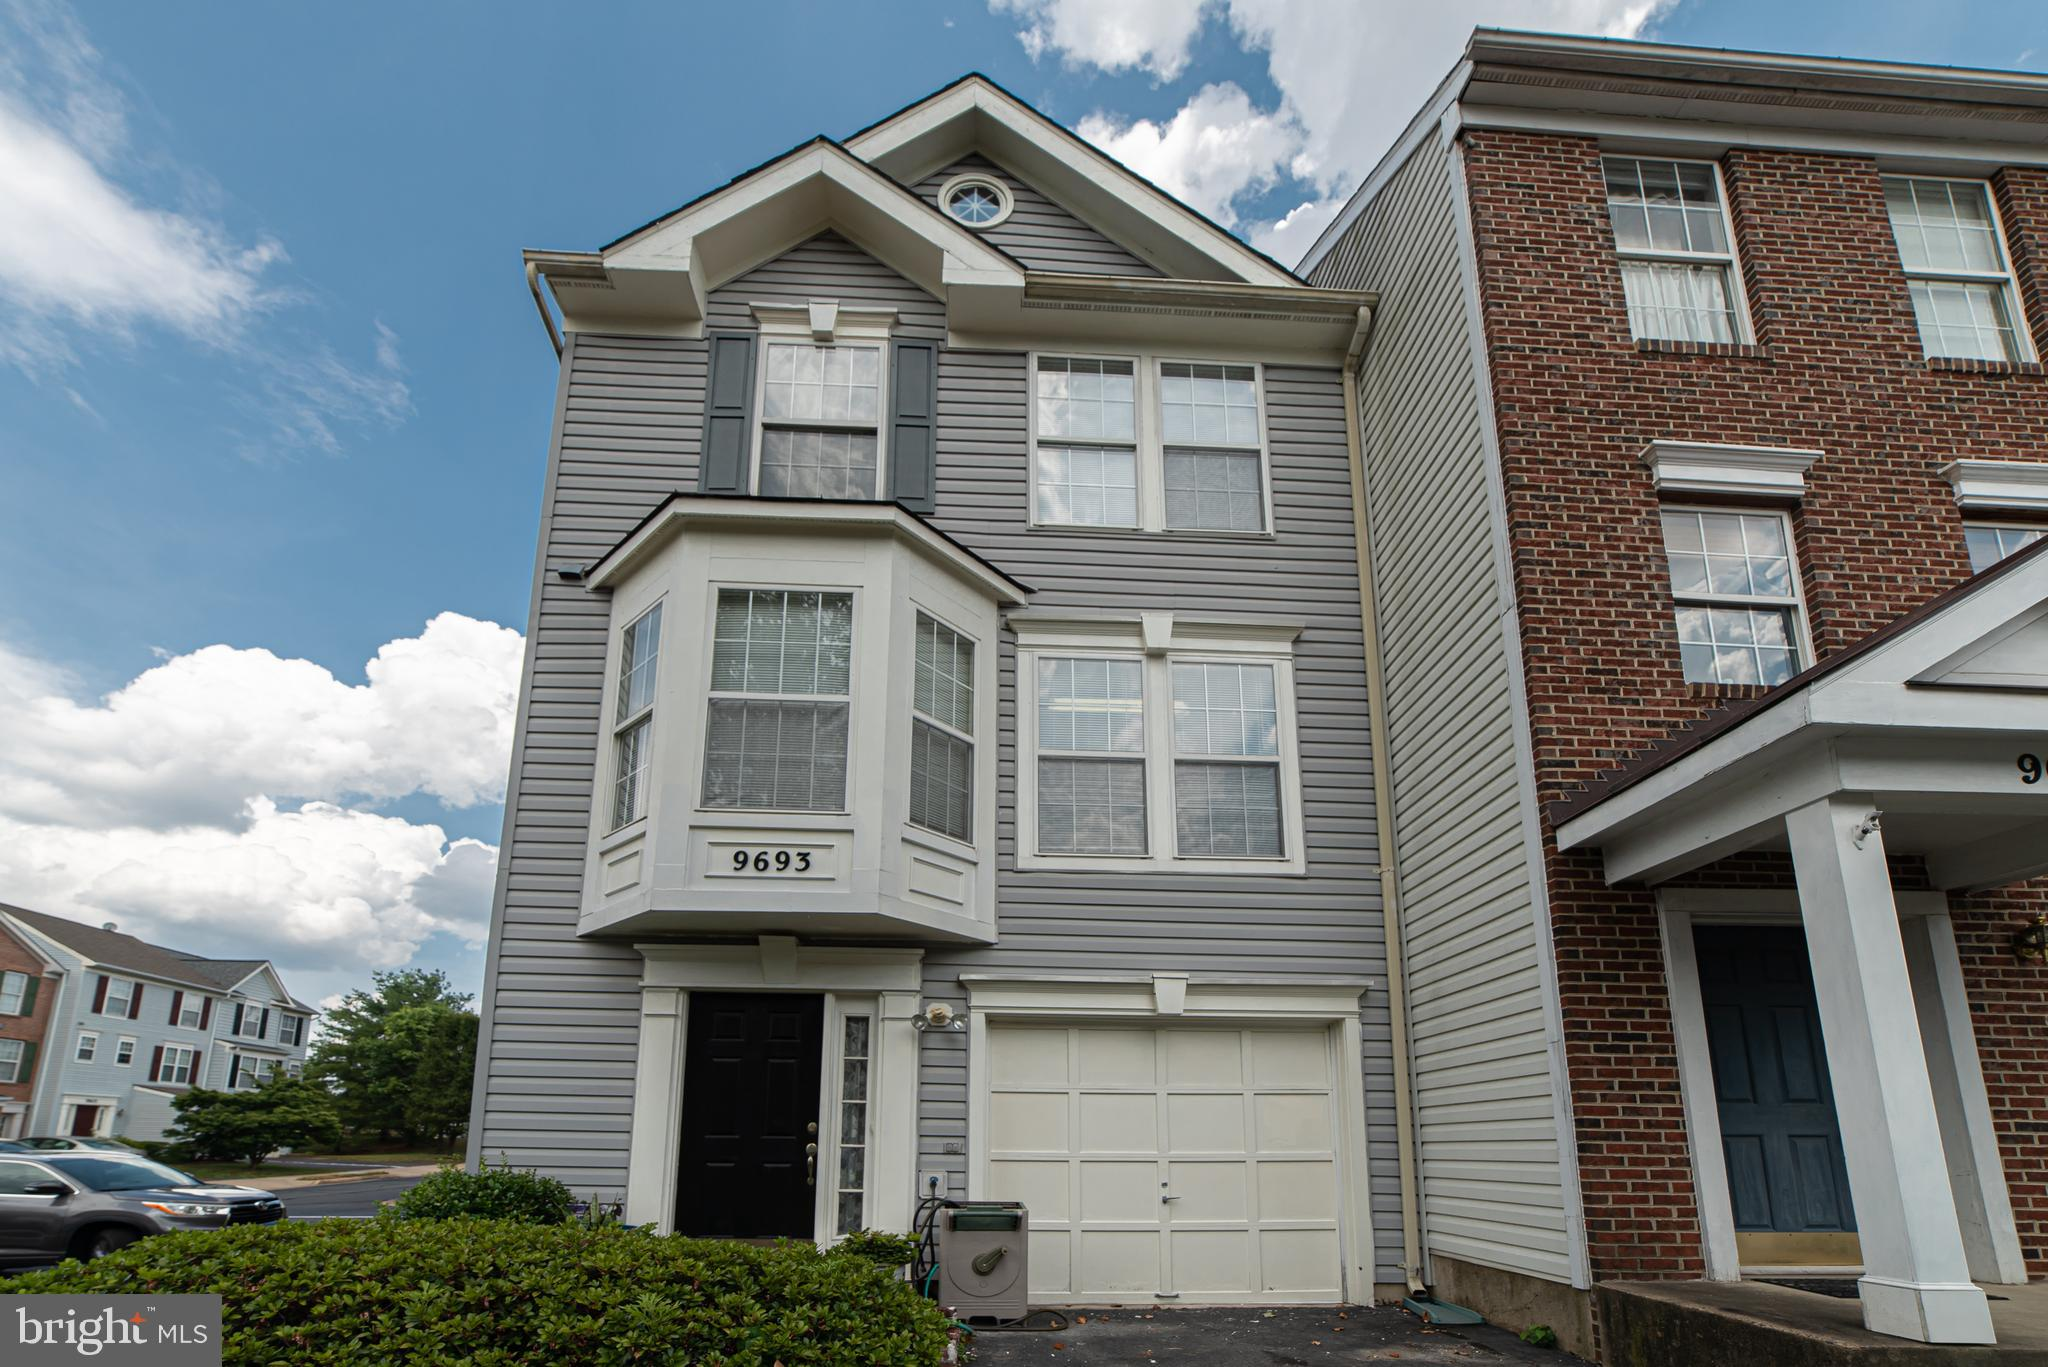 PENDING RELEASE ---Spacious End Unit Townhouse in Saybrooke - Braemar! 3 Level - 3 BR / 2 Full / 2 H